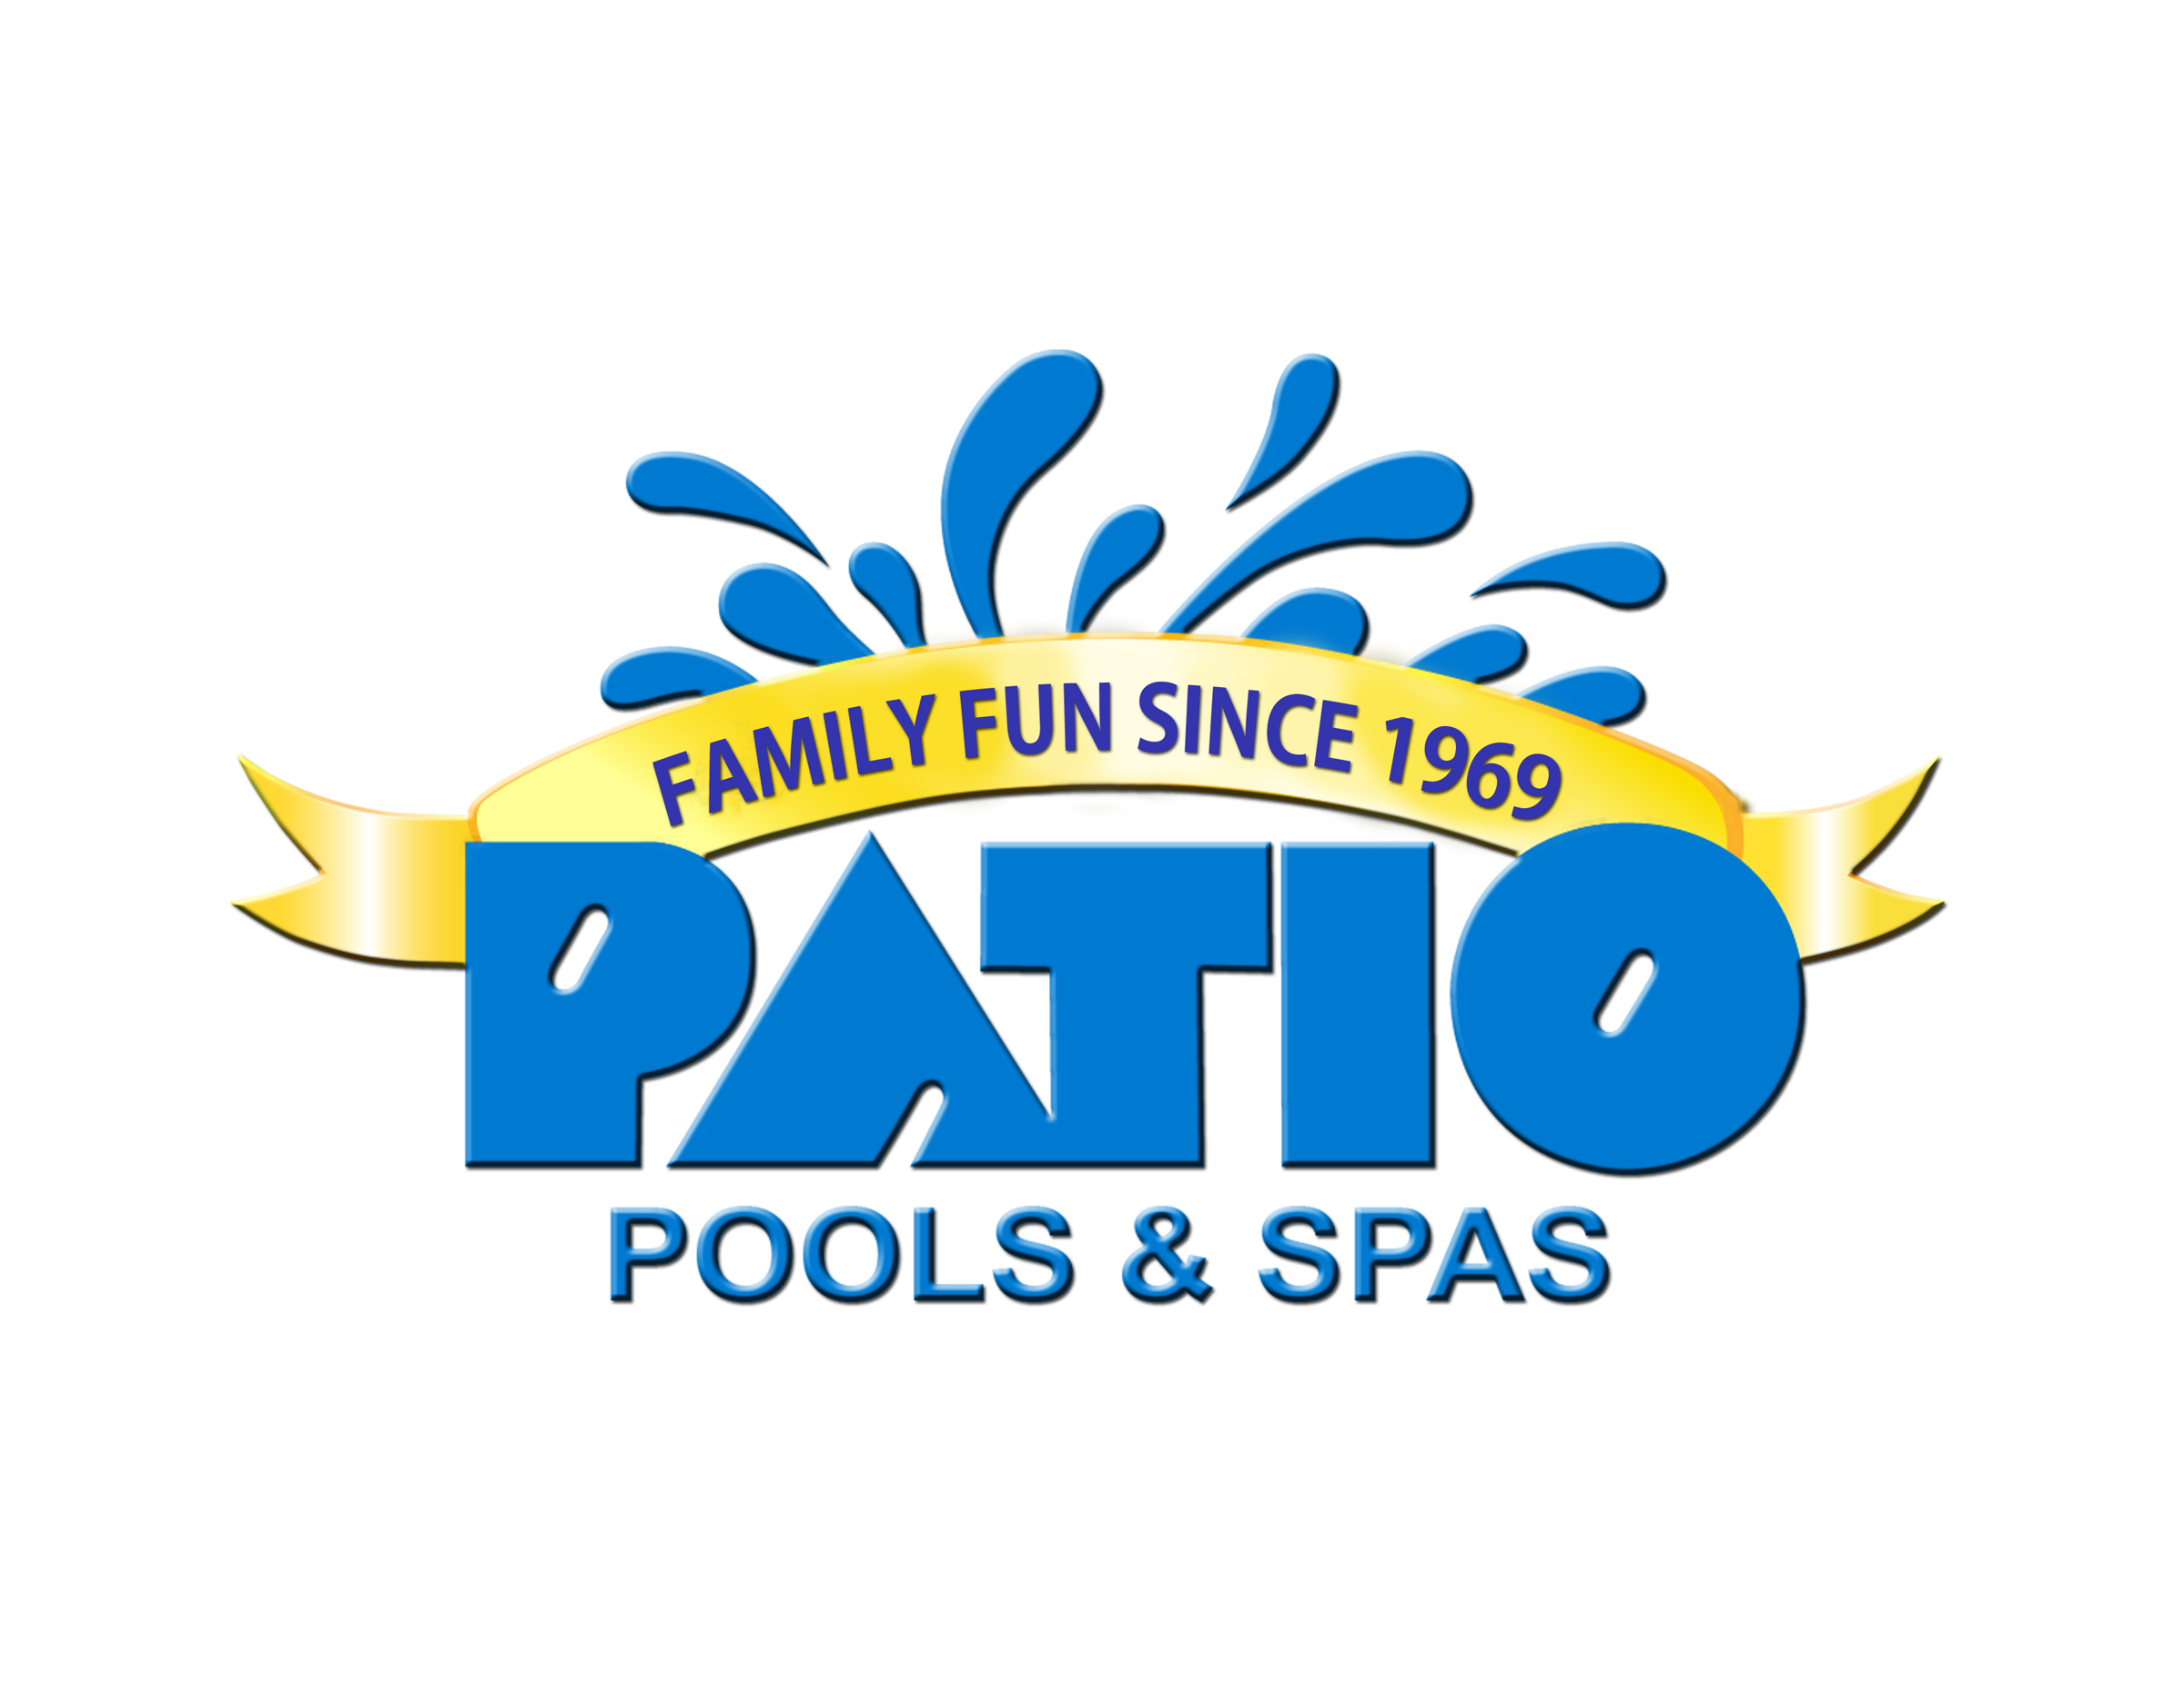 Patio Pools & Spas - Sierra Vista, AZ